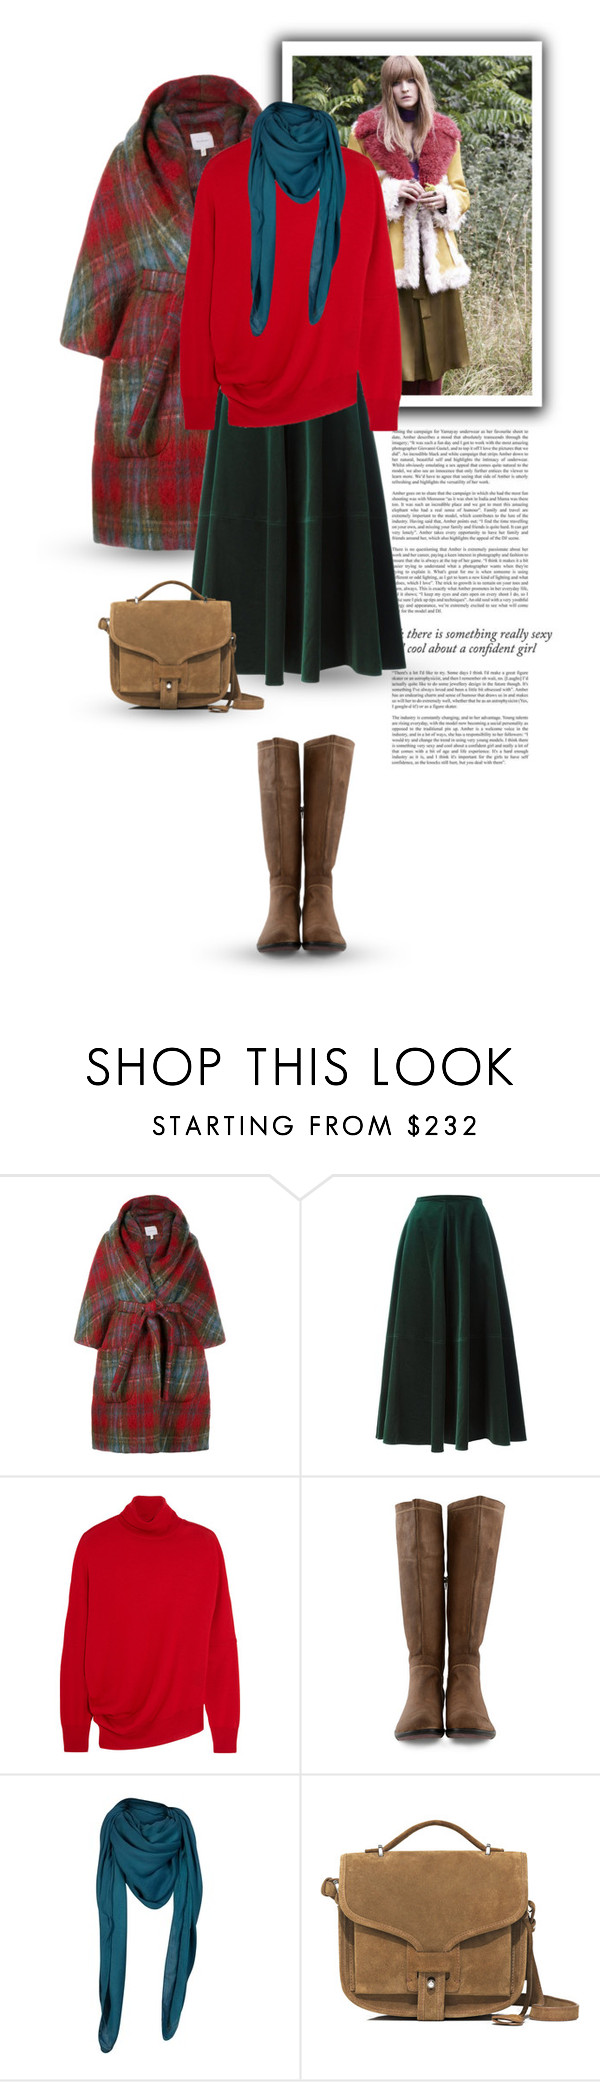 """16.01.2017"" by bliznec-anna ❤ liked on Polyvore featuring Haze, Miu Miu, Delpozo, MM6 Maison Margiela, Balenciaga, Fly LONDON, Comptoir Des Cotonniers and Opening Ceremony"